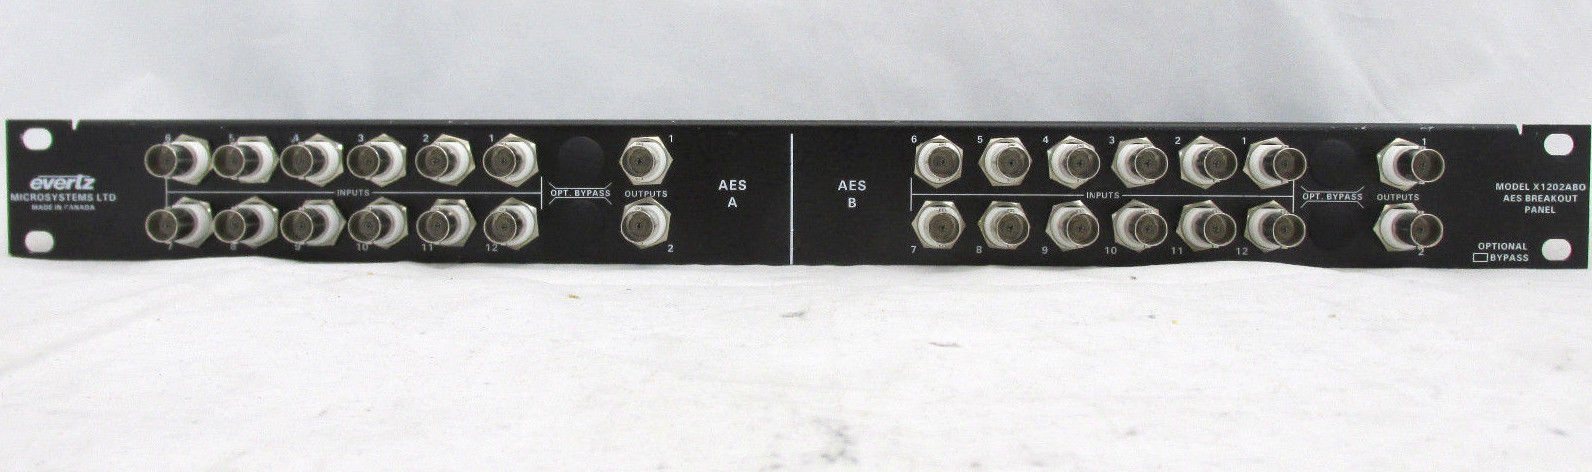 EVERTZ X1202ABO UNBALANCED 12 x 2 input  AES BREAKOUT PANEL